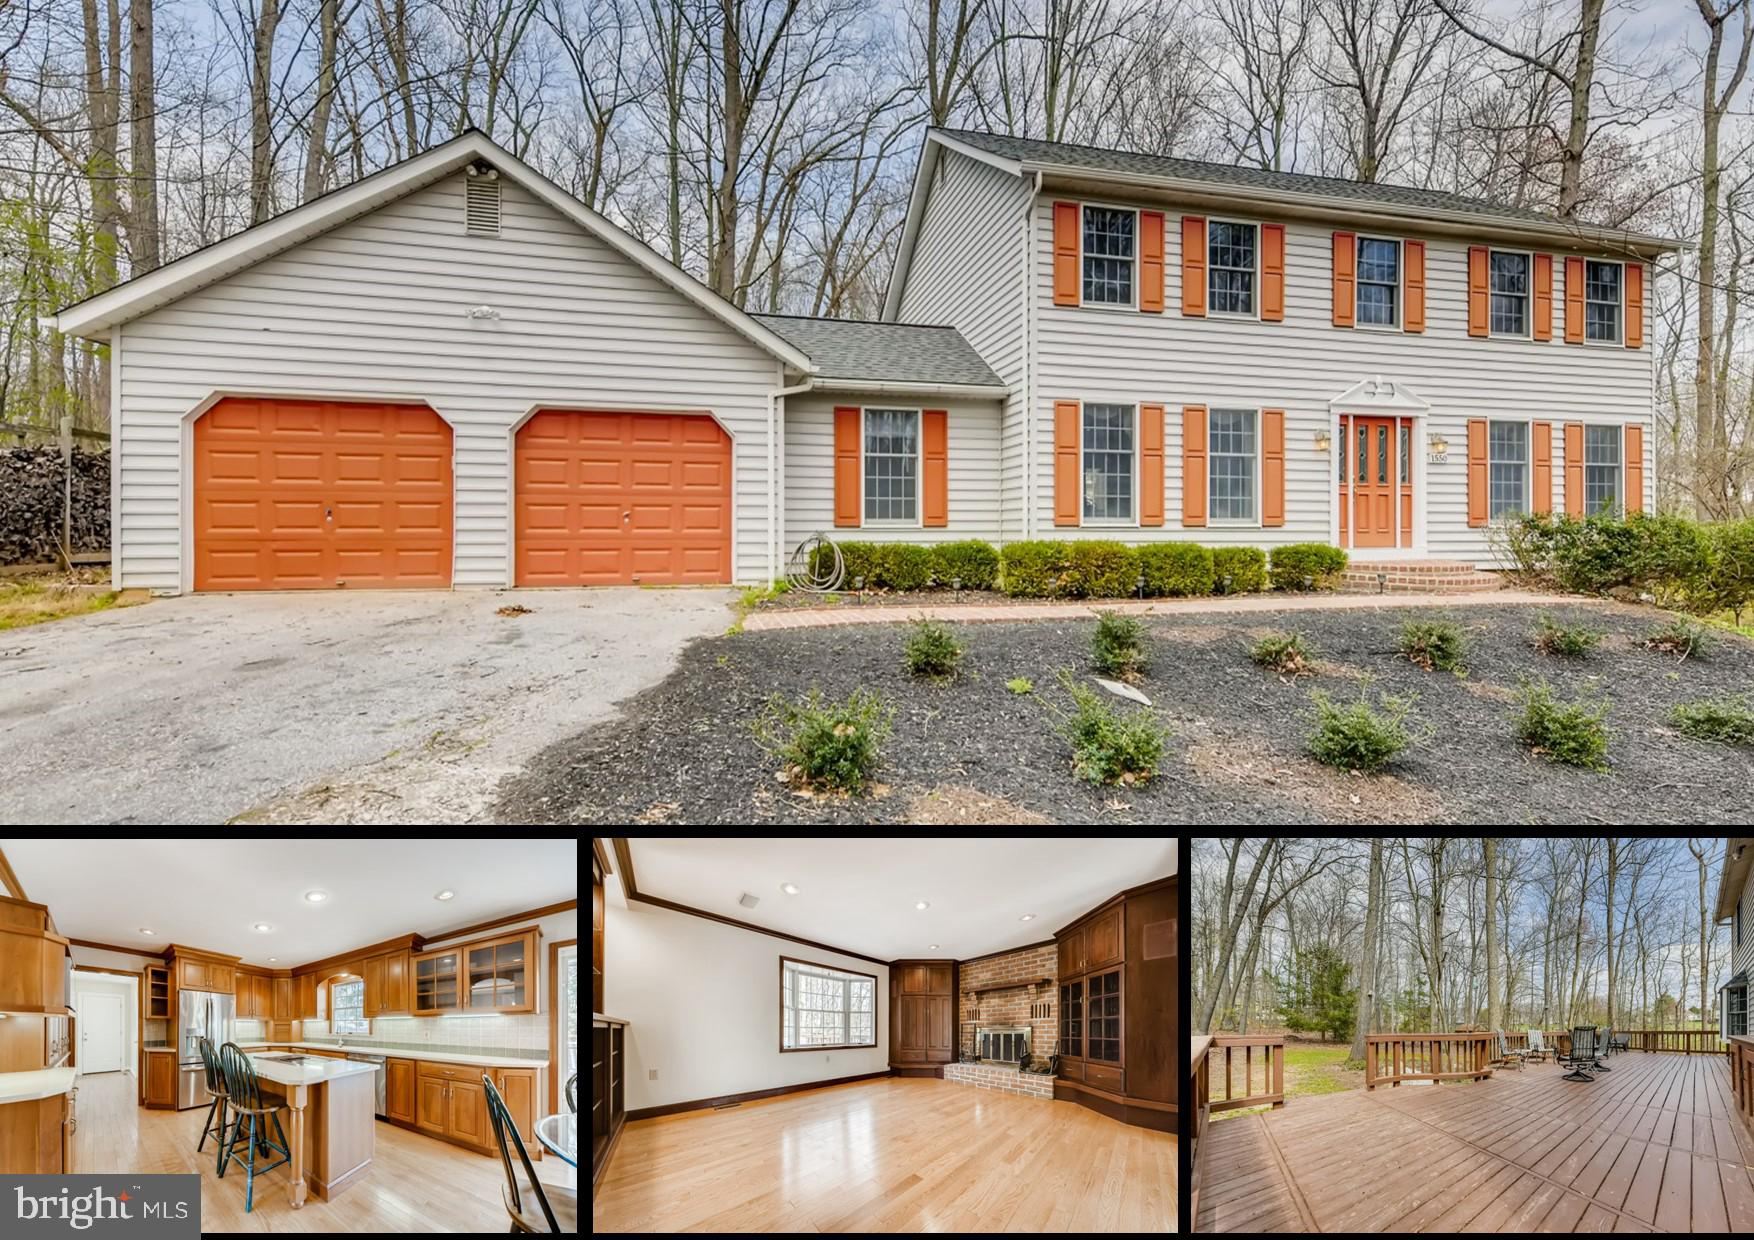 Rarely available 4 bedroom 4 bathroom Colonial style home with a 2 car garage, on 3+ acres of wooded